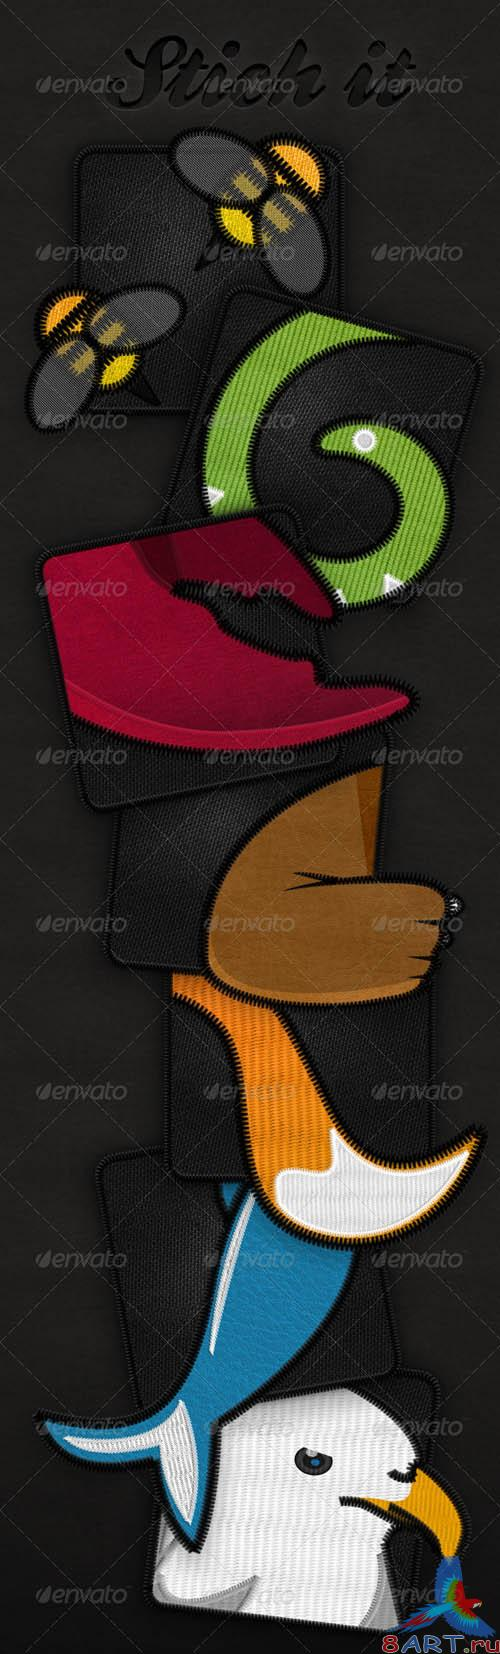 GraphicRiver Stitch it